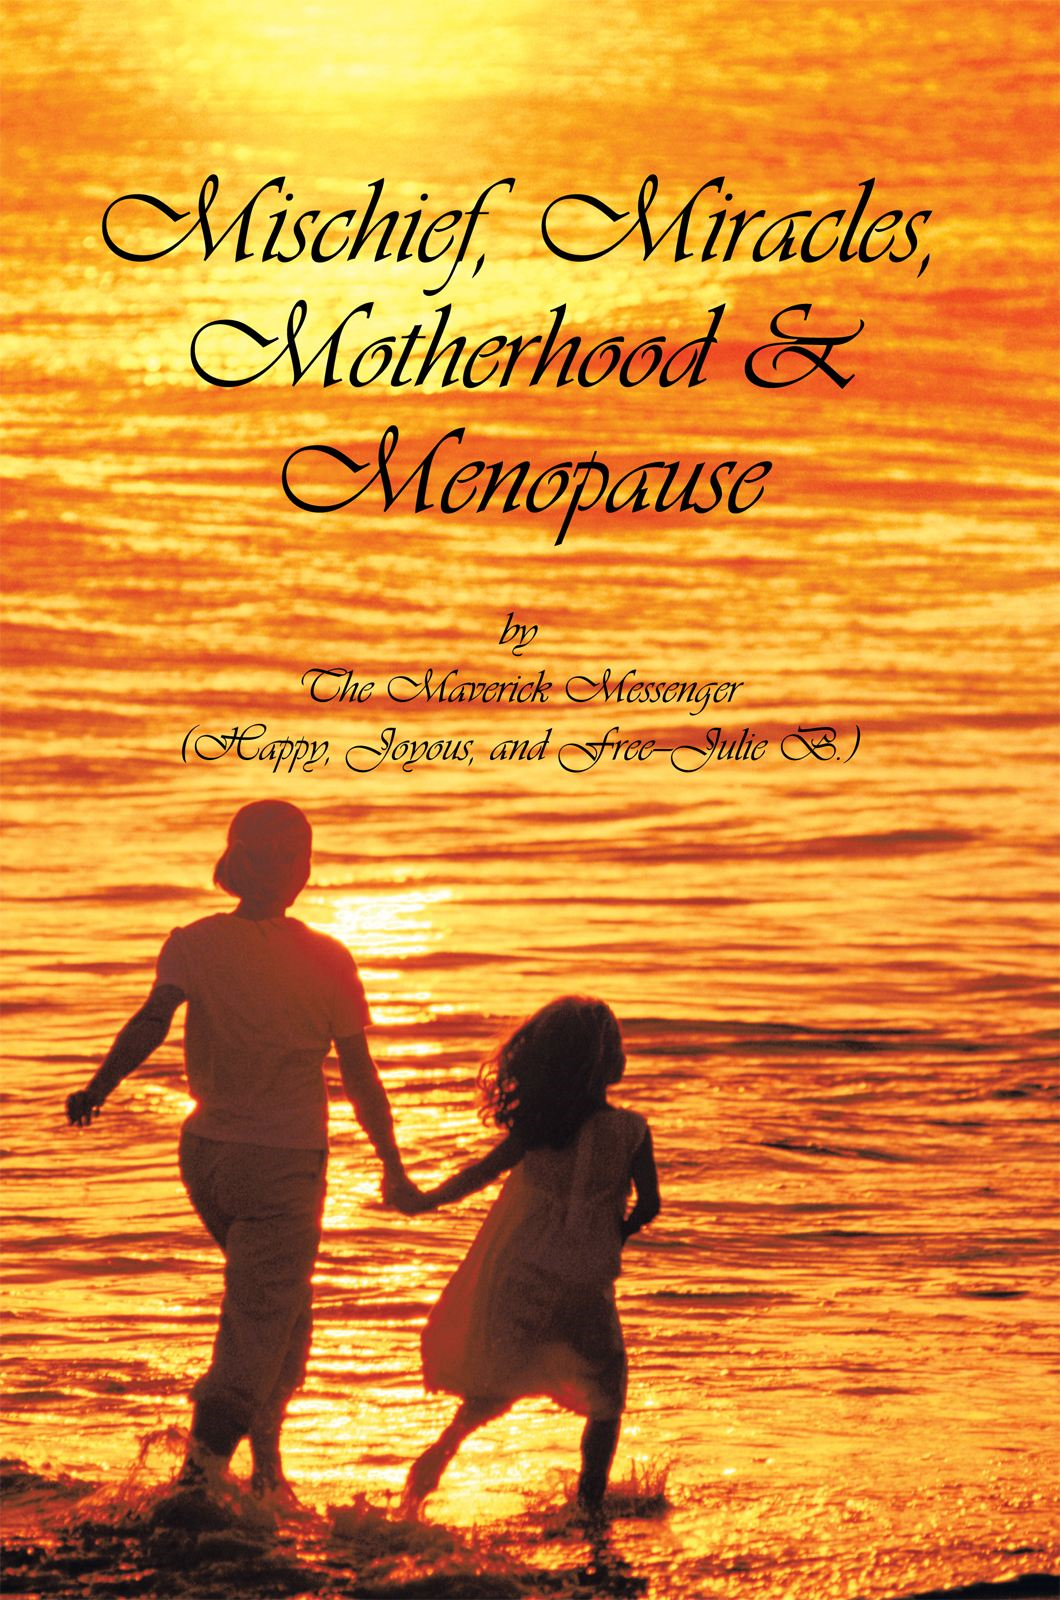 Mischief, Miracles, Motherhood, & Menopause